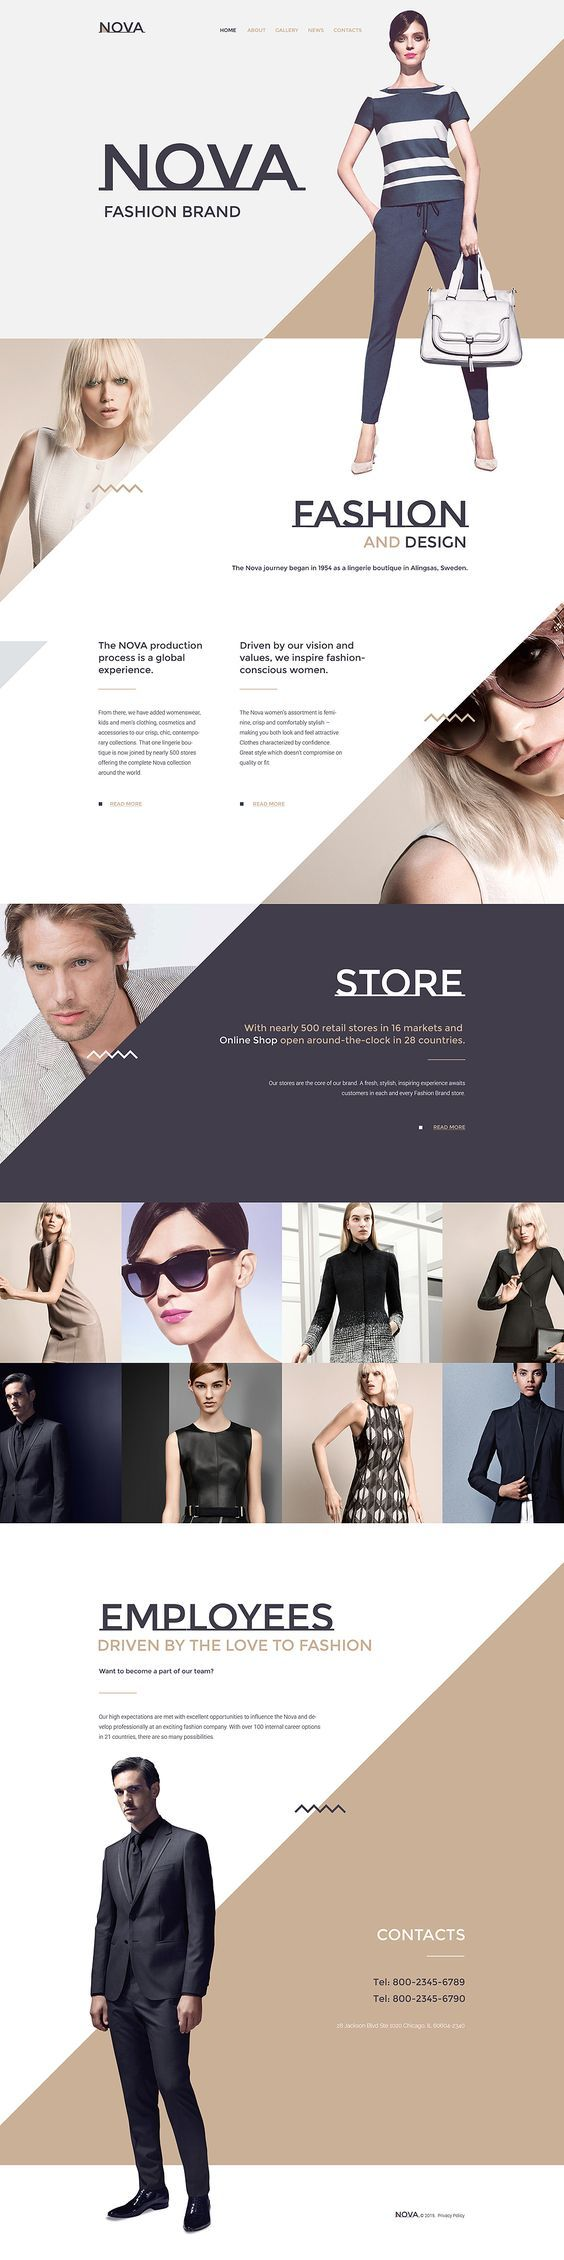 Ecommerce WP Themes #web #design: - Love a good success story? Learn how I went from zero to 1 million in sales in 5 months with an e-commerce store.